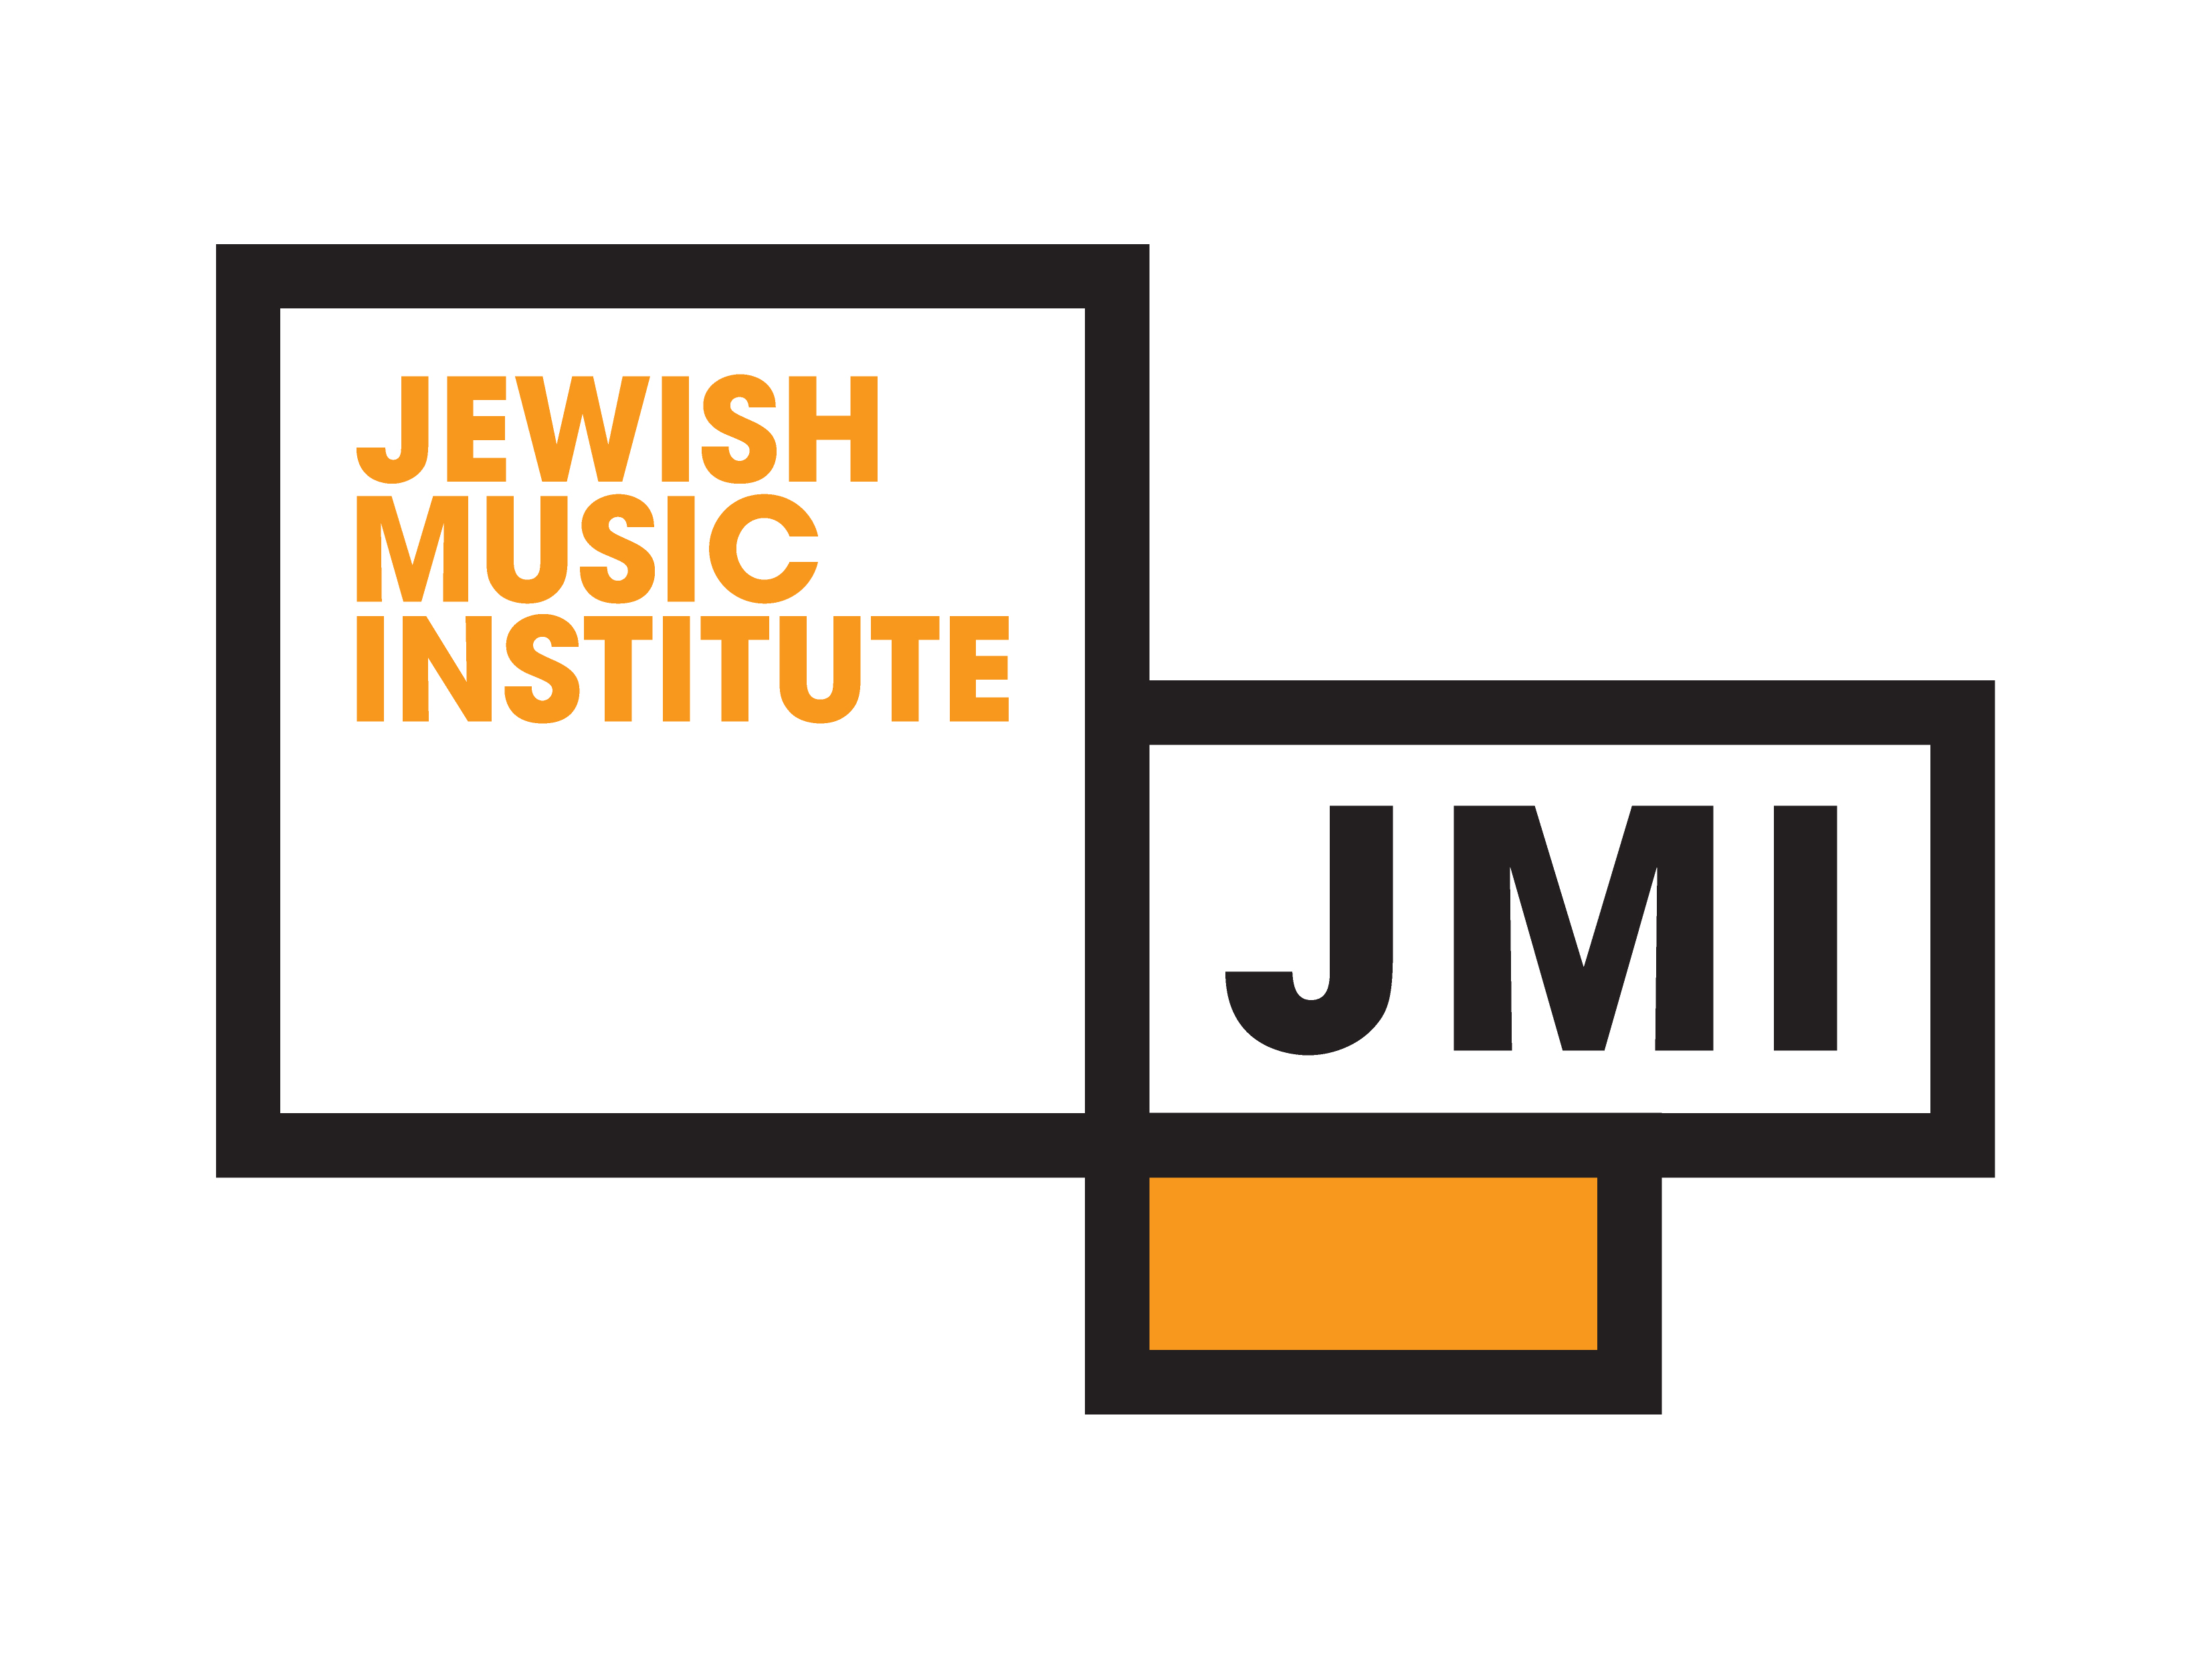 JMI logo and link to JMI website